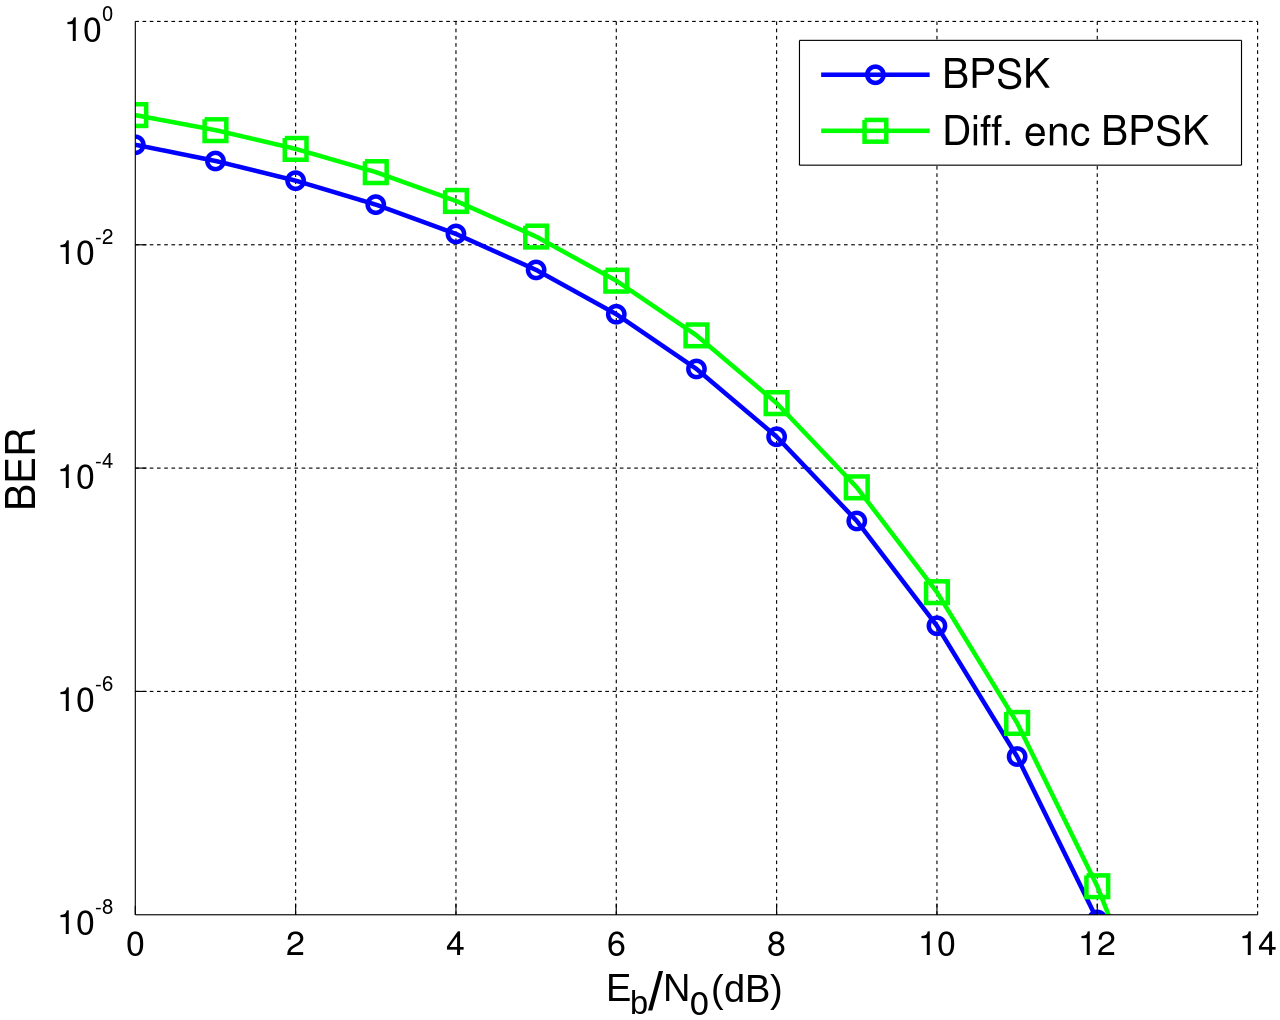 Bit Error Rate Curves Bpsk Binary Phase Shift Keying Vs Depsk Differentially Encoded Phase Shift Keying